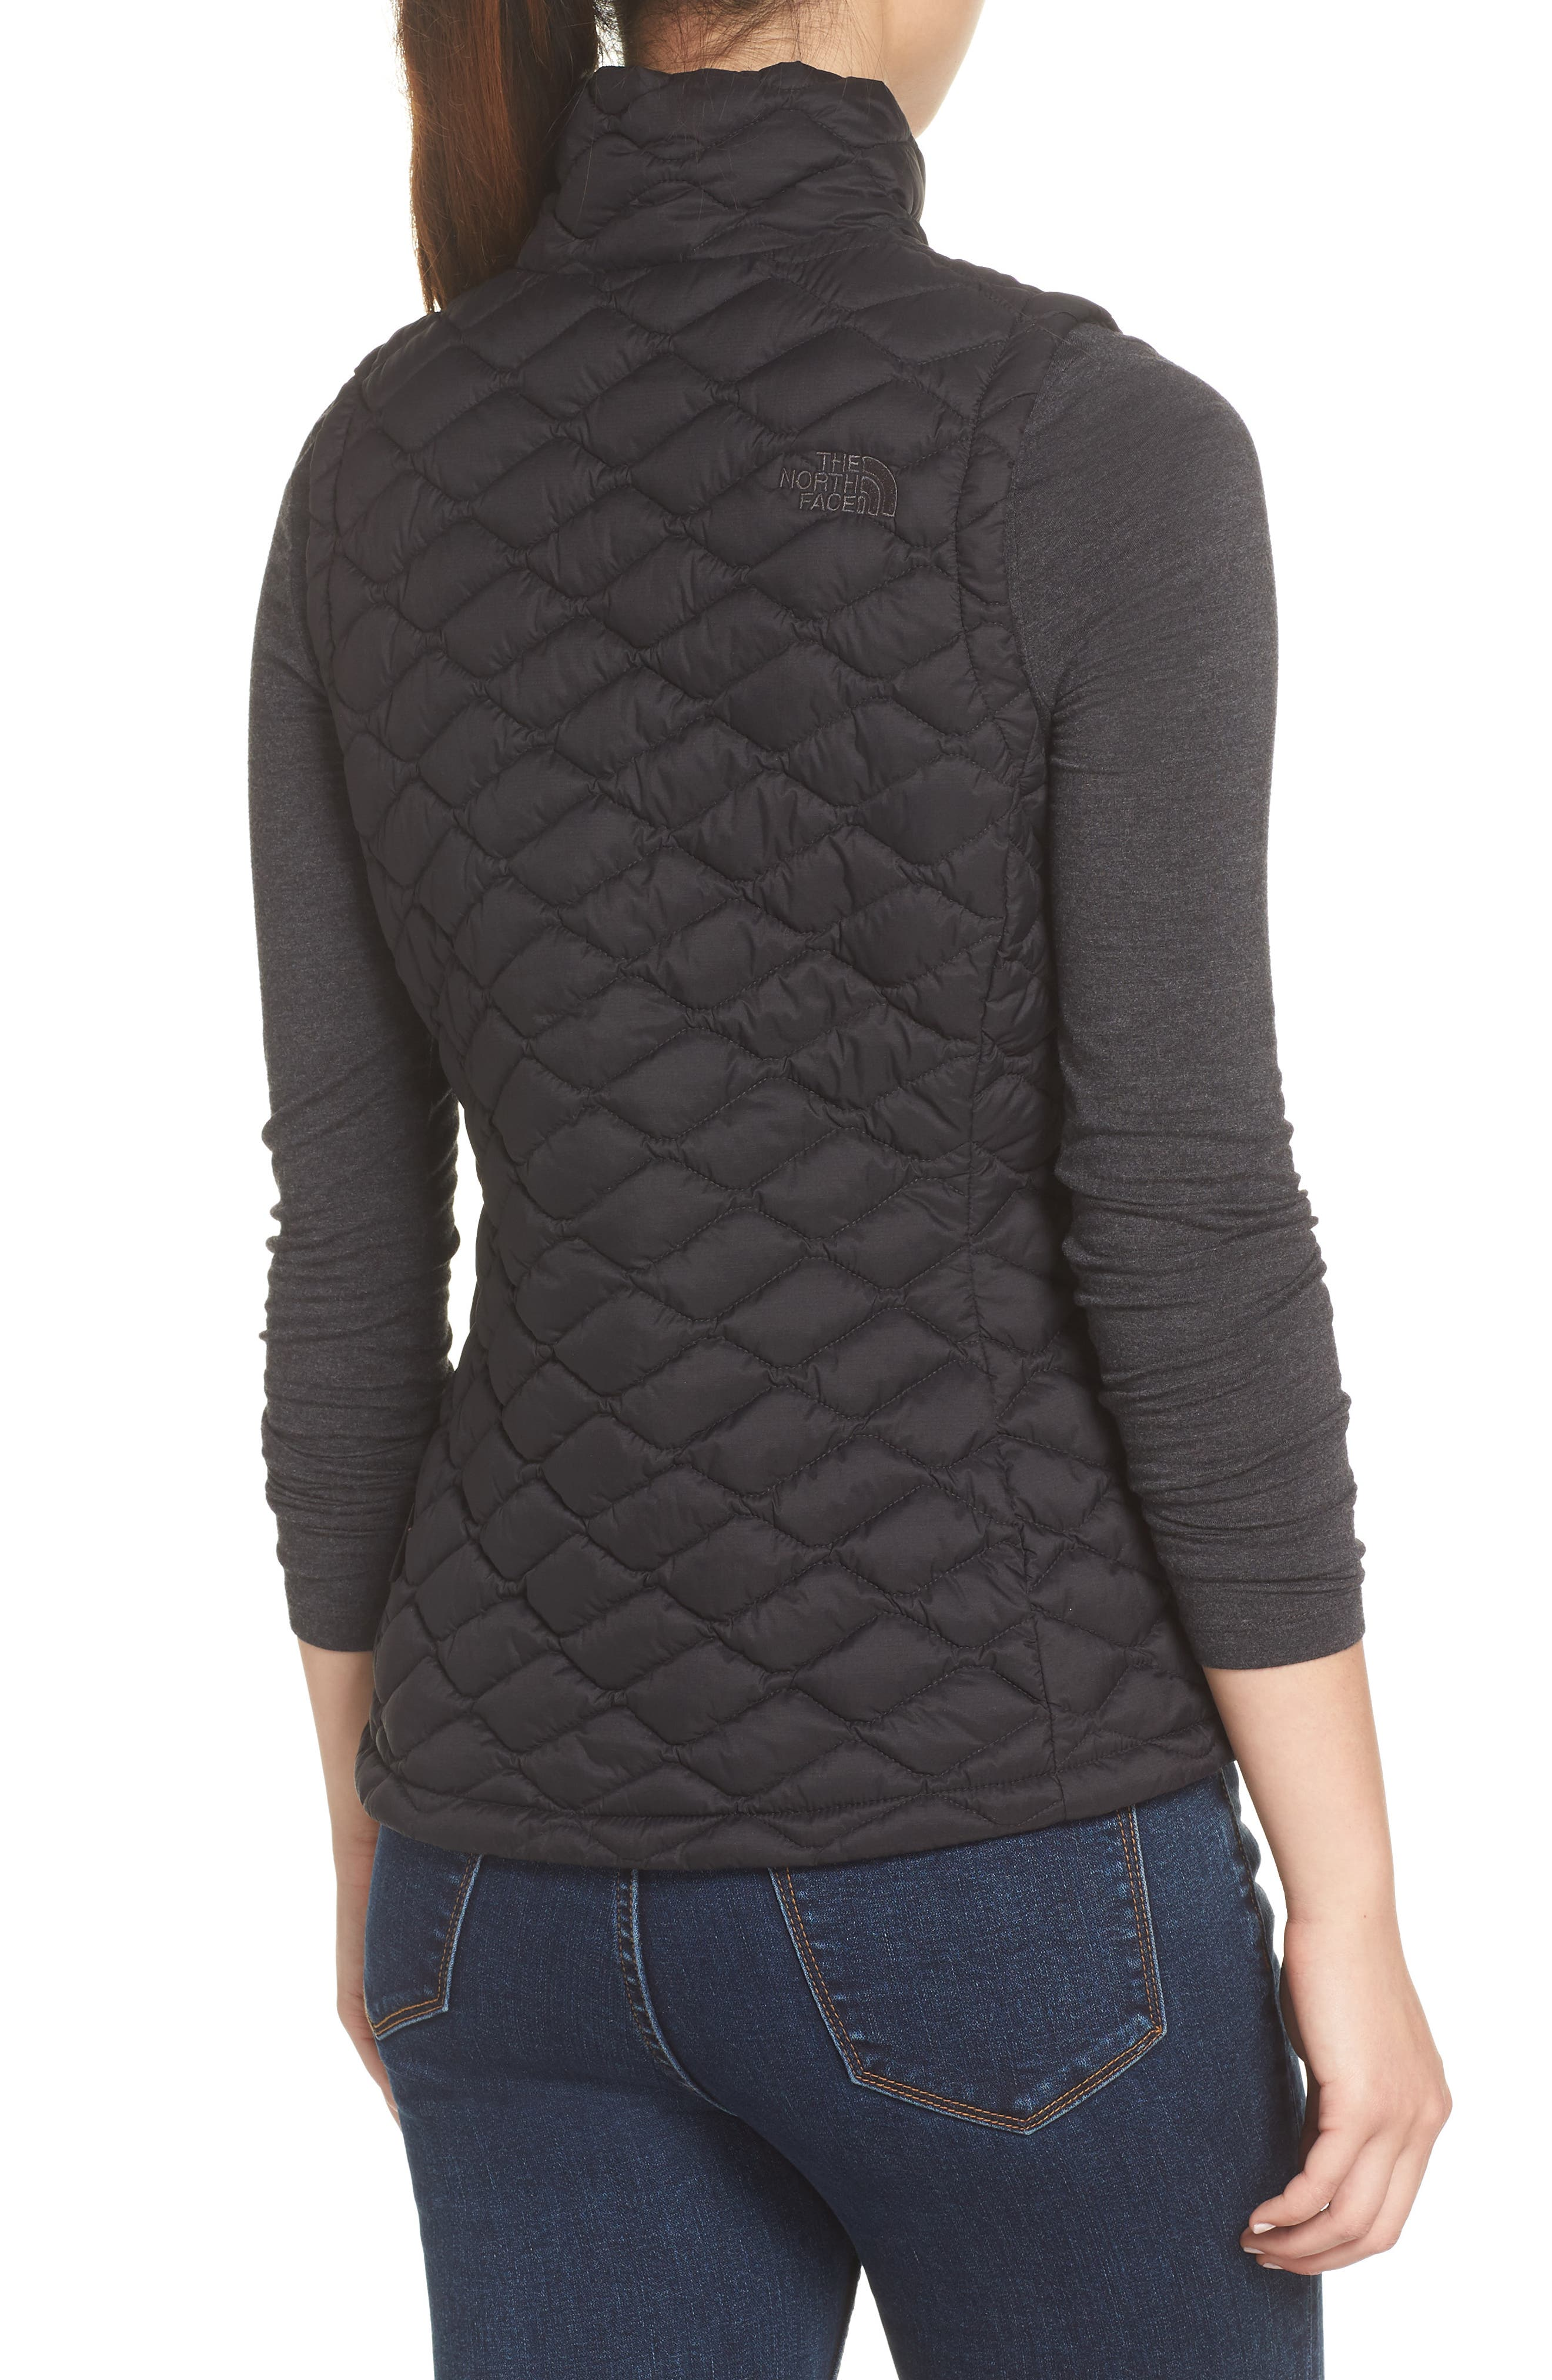 THE NORTH FACE,                             ThermoBall<sup>™</sup> PrimaLoft<sup>®</sup> Vest,                             Alternate thumbnail 2, color,                             TNF BLACK MATTE